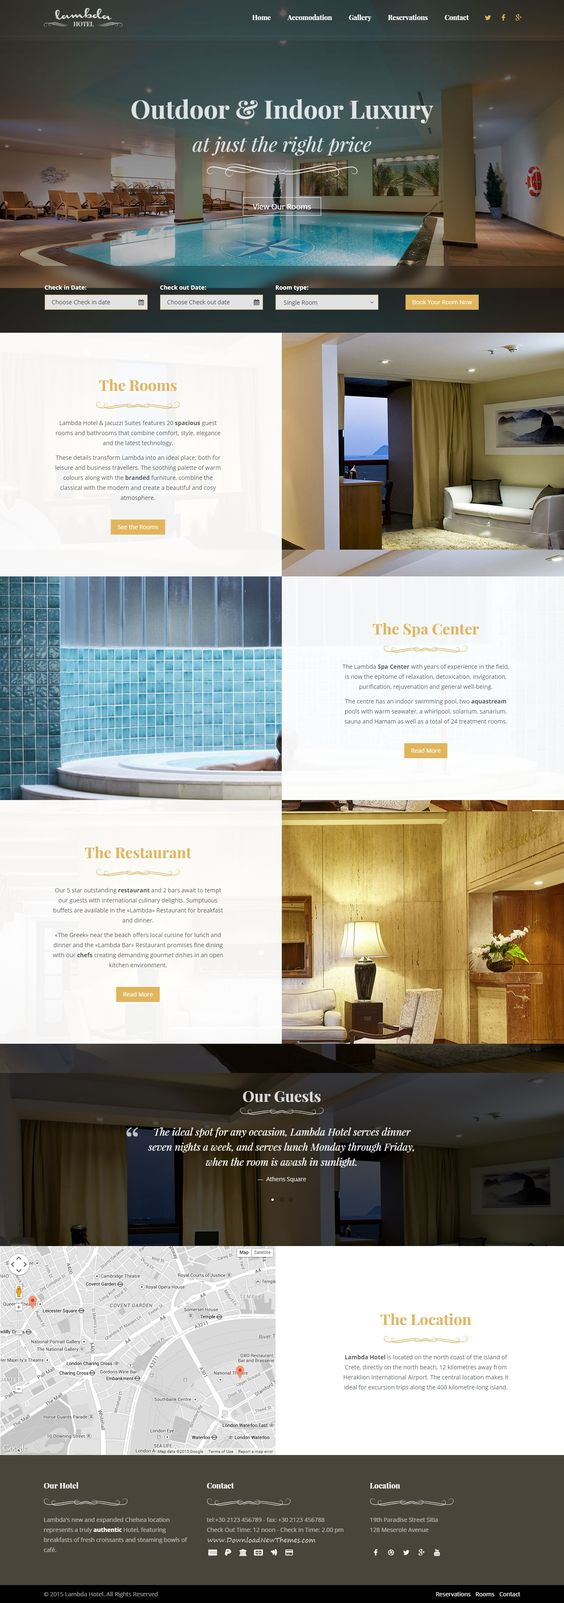 Lambda is an new multipurpose #Bootstrap Template. It has 60+ amazing HTML pages. Super elegant design perfect for a #hotel #website.